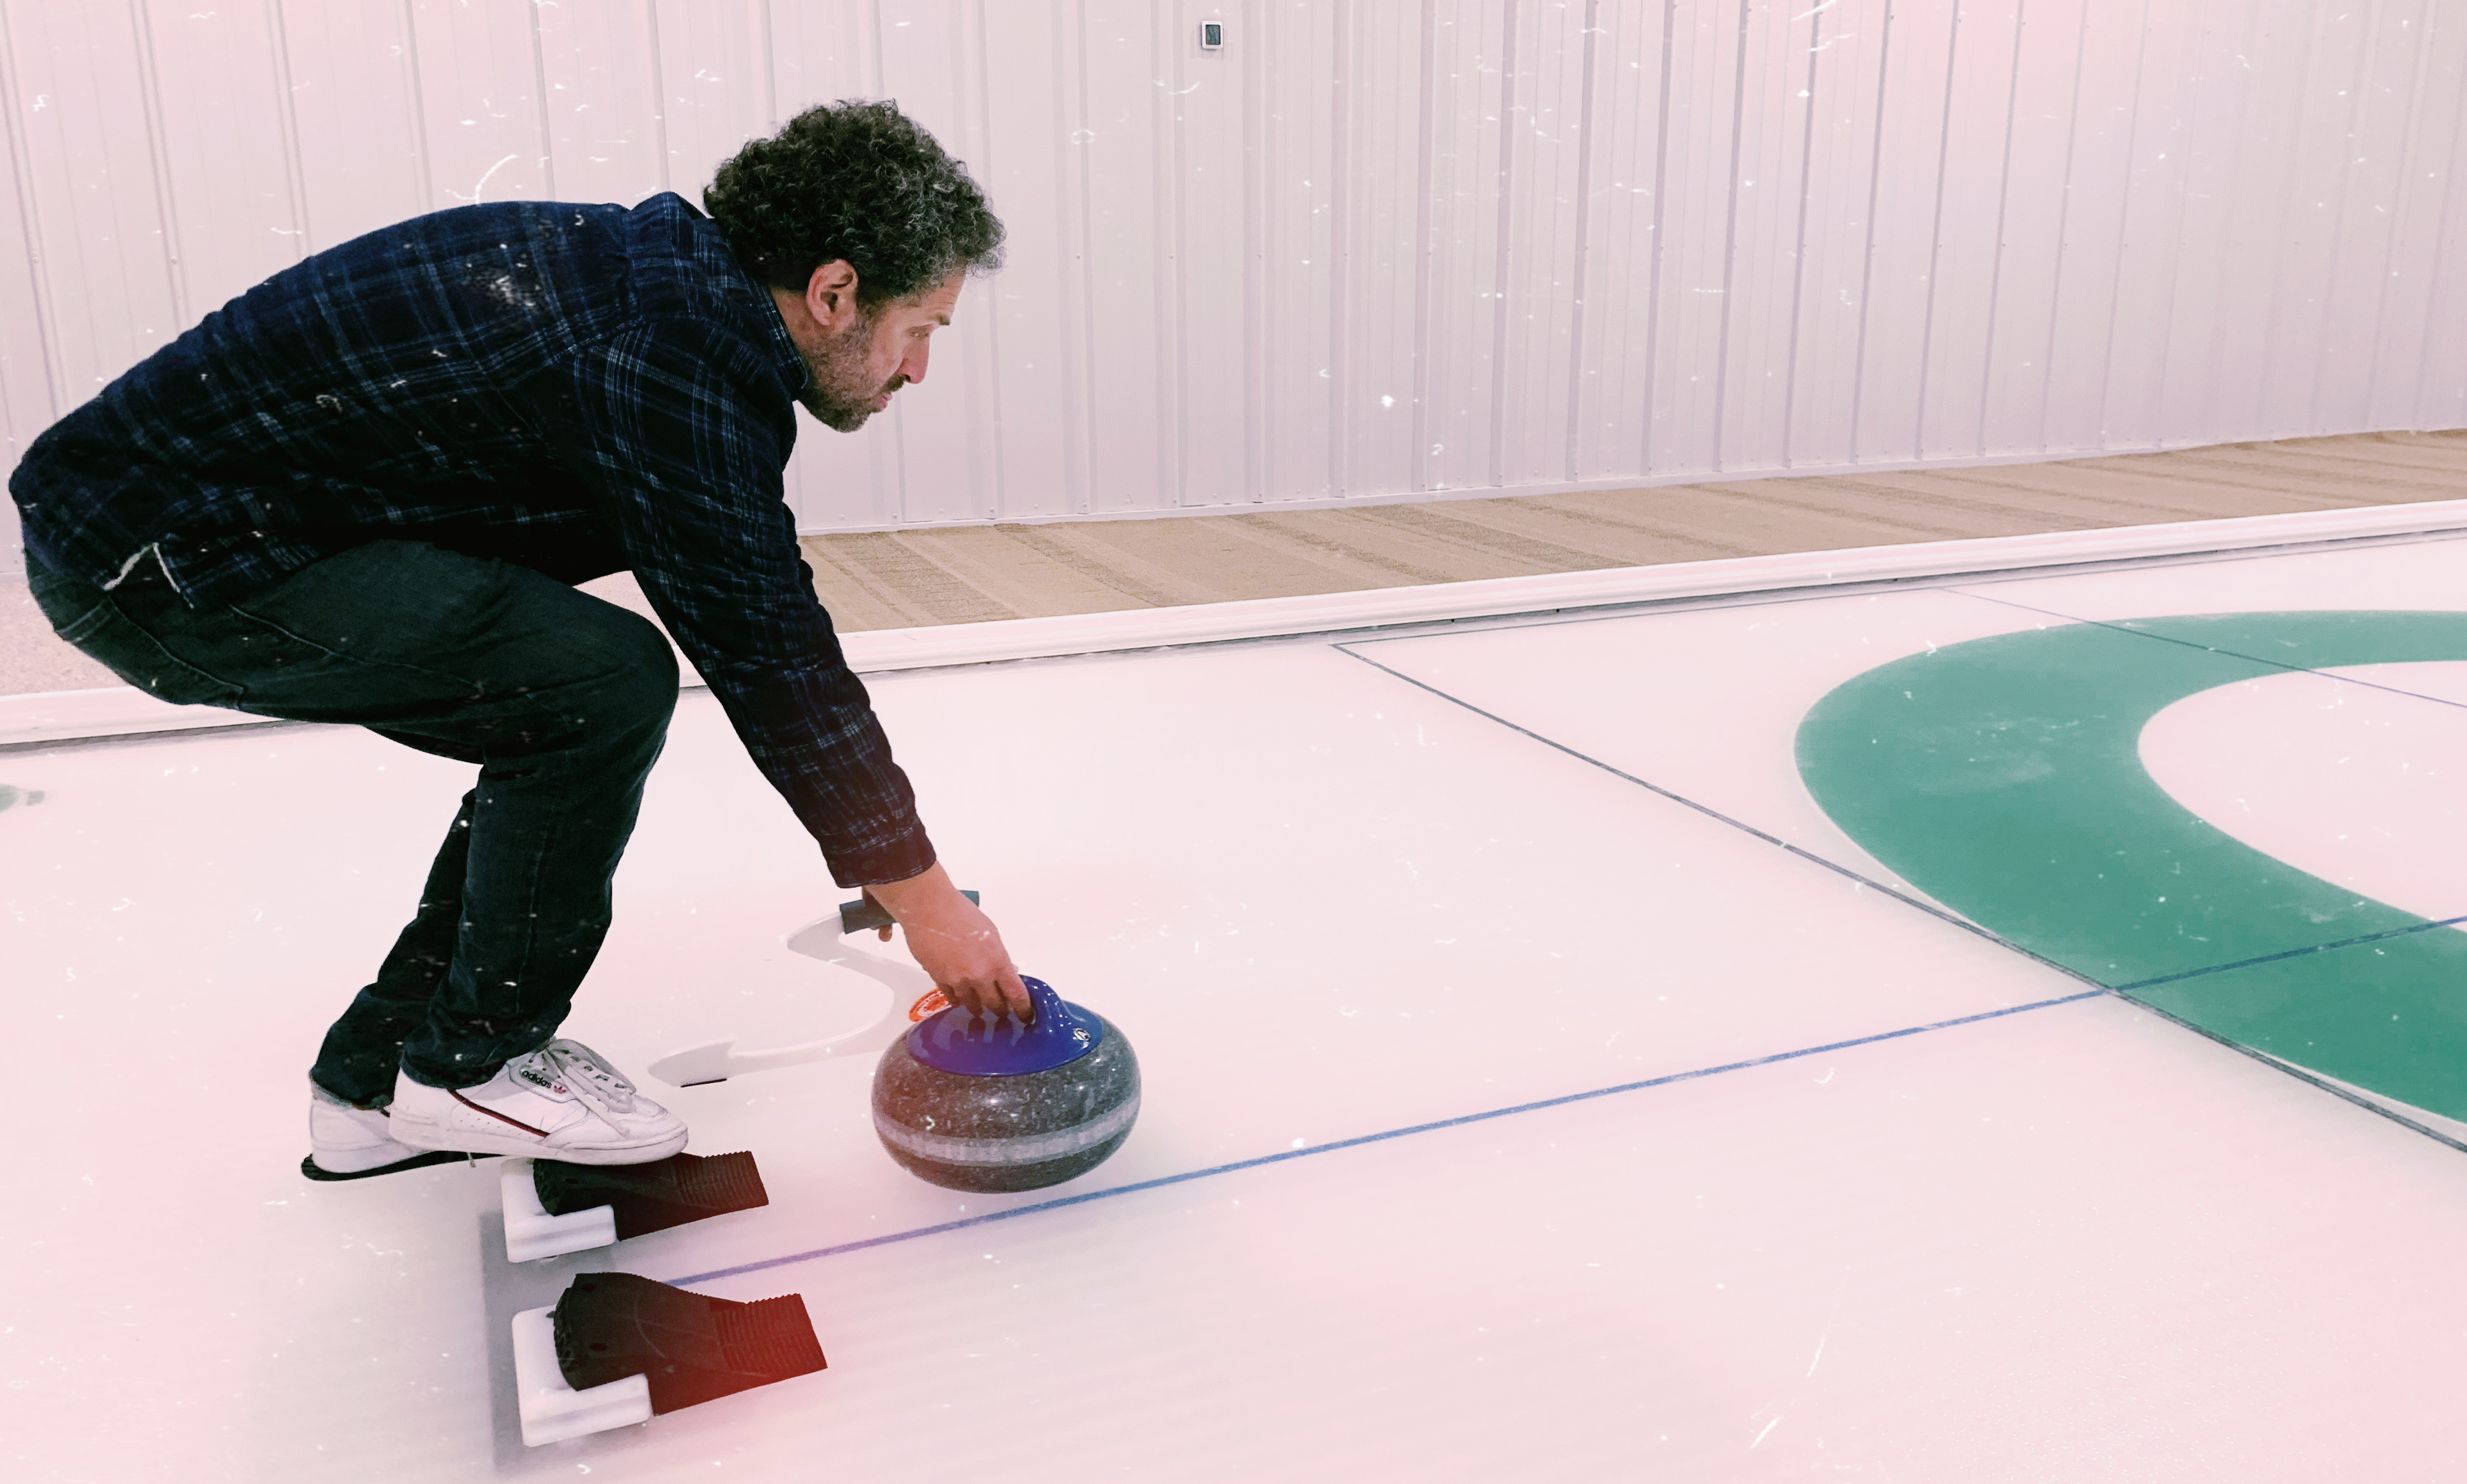 man curls stone down ice